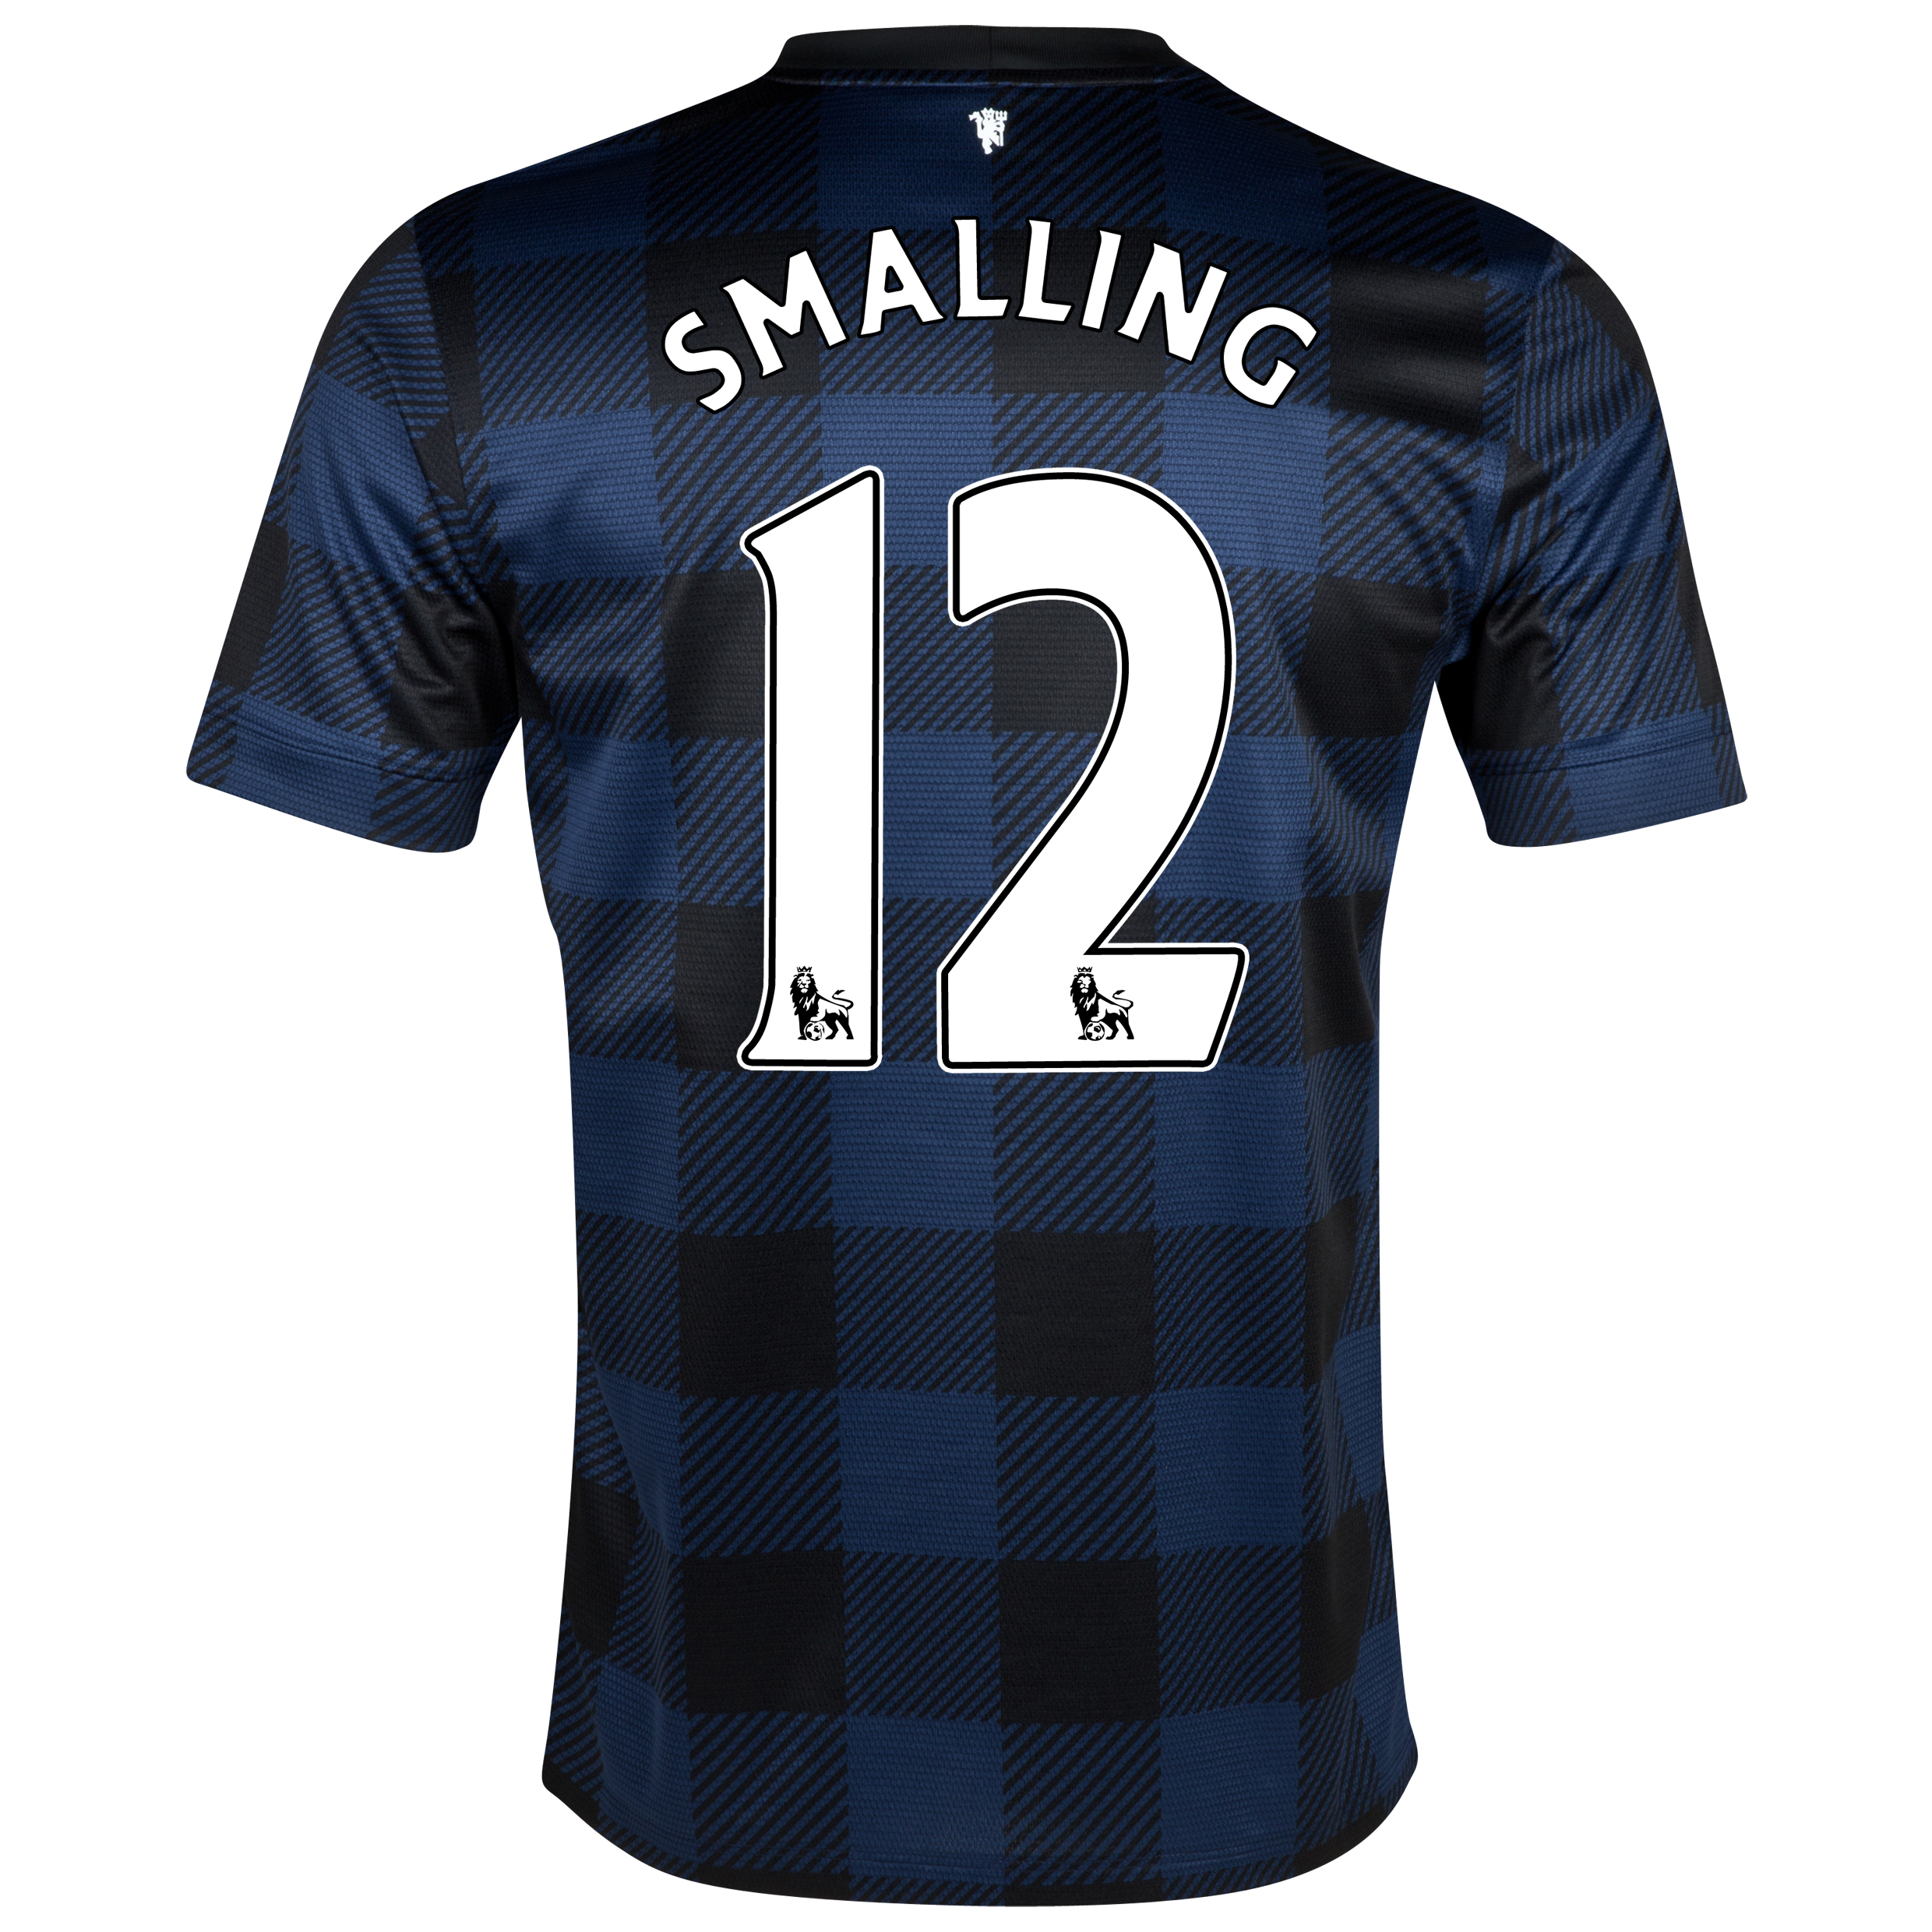 Manchester United Away Shirt 2013/14 with Smalling 12 printing